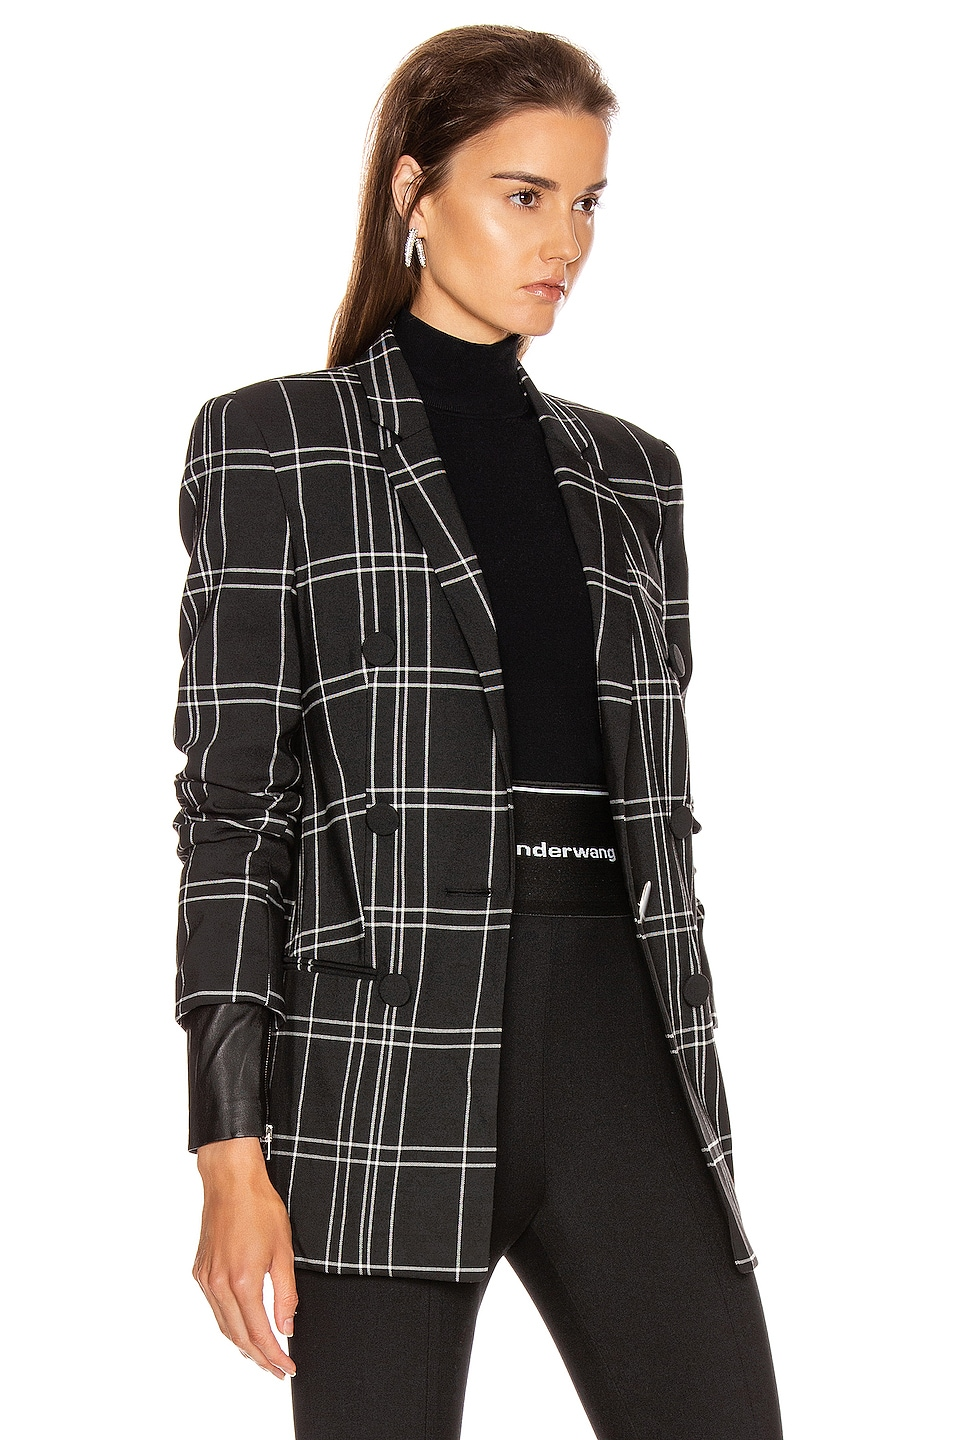 Image 3 of Alexander Wang Peaked Lapel Blazer with Leather Sleeves in Black & White Windowpane